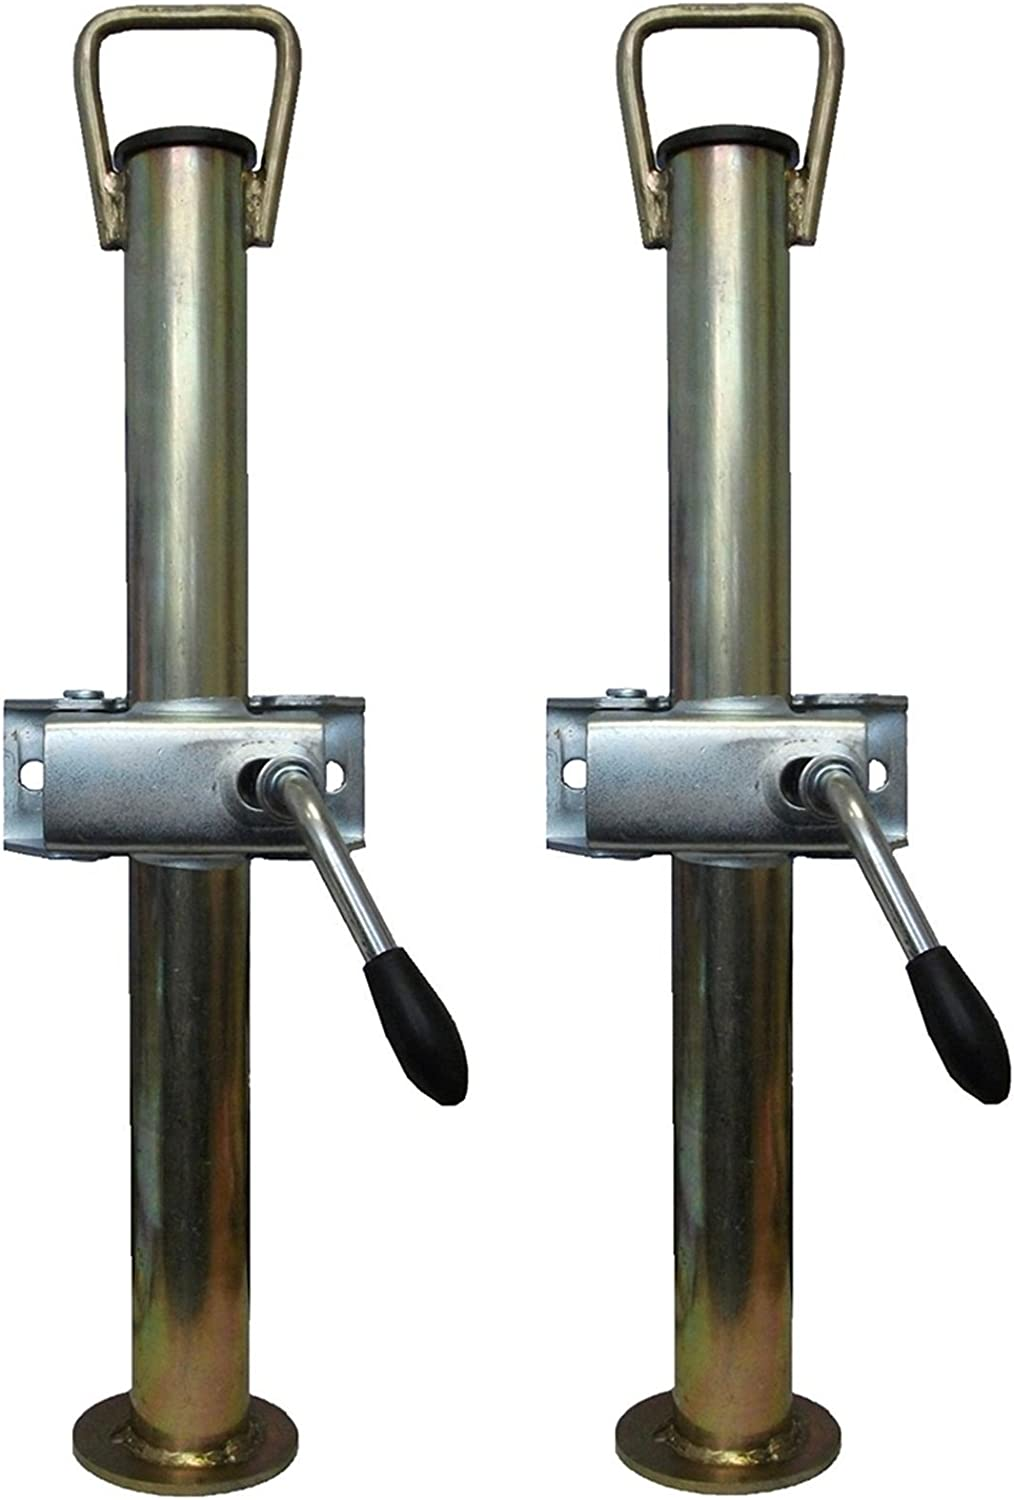 leisure MART A pair of trailer prop stands corner steadys with handle 42mm diameter x 600mm length with split clamps Pt no LMX1522